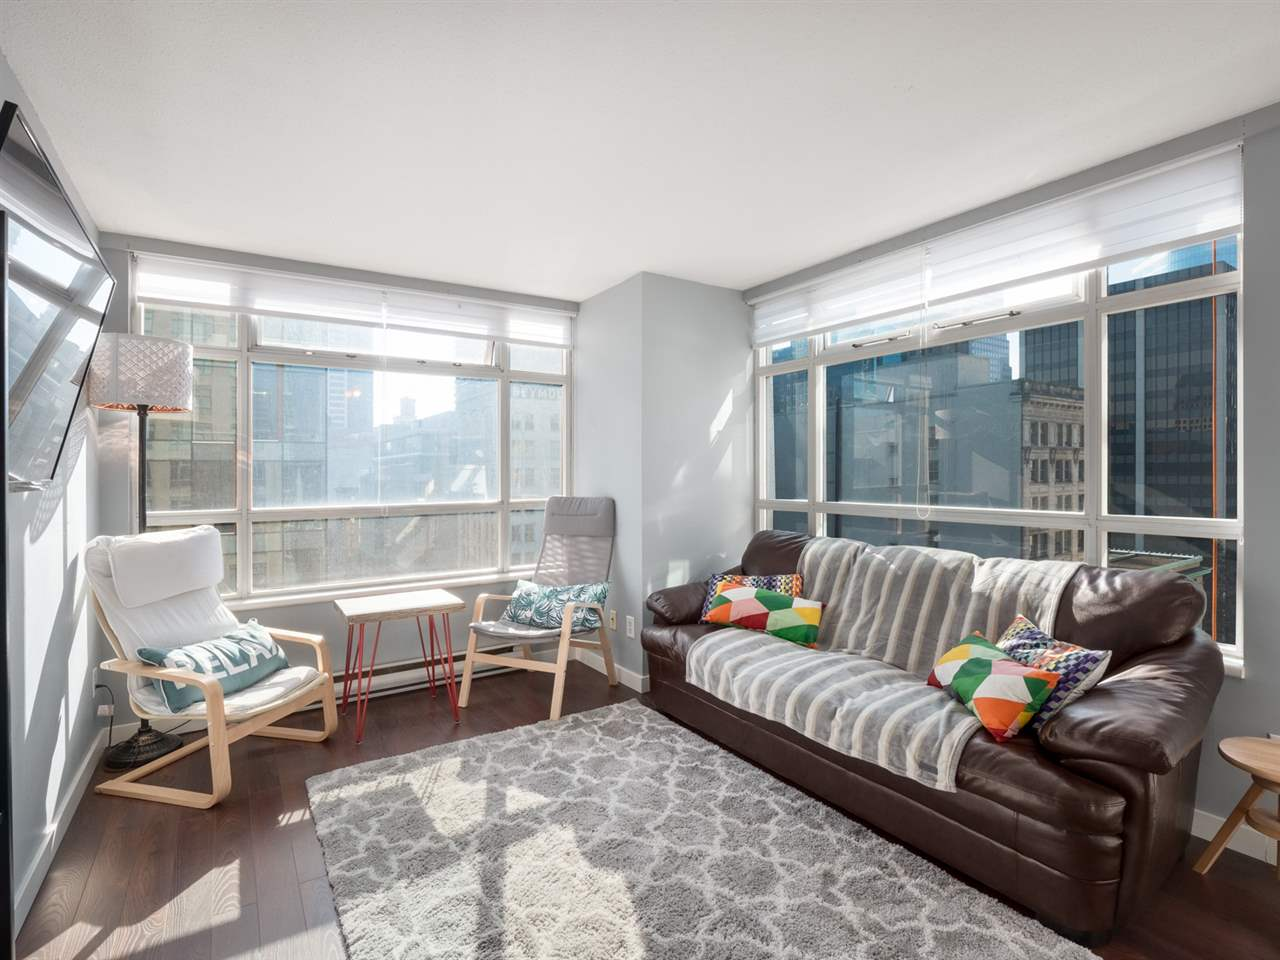 First time buyer or investor alert! This 1 bed + den/solarium corner unit is in the heart of Downtown! Walk into a light-filled condo offering a functional floorplan and fantastic city views of Downtown Vancouver. Incredibly convenient location with just steps away to waterfront station, Pacific Centre, financial district and Gastown. BCIT, SFU and other private colleges are in close proximity along with restaurants and shopping galore - you can't be any more central for the city dweller! Amenities include 24hr concierge, an indoor pool, sauna, gym and bike room. 1 parking, 1 storage included and rentals are allowed!OPEN HOUSE,SAT & SUN, JAN 26 & 27, 2-4PM